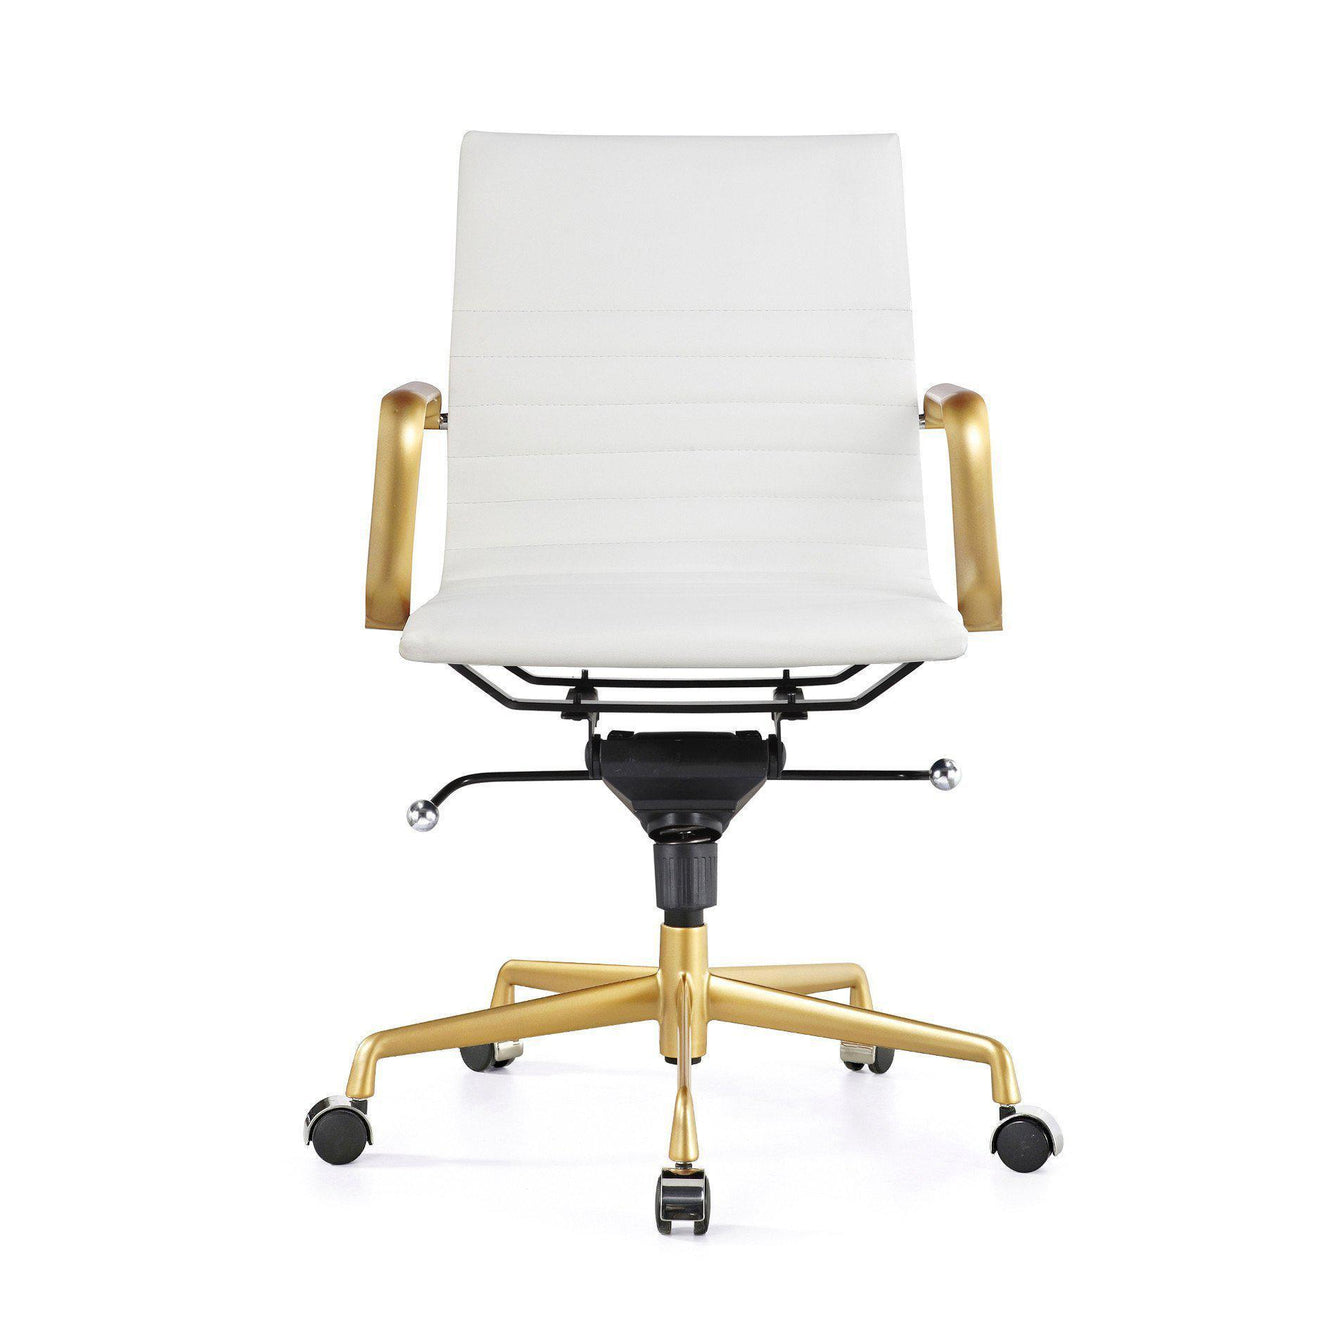 Decade Gold Modern Leather Office Chairs Set of 2-Home - Furniture - Office Chairs-DESIGN LAB MN-White-Peccadilly